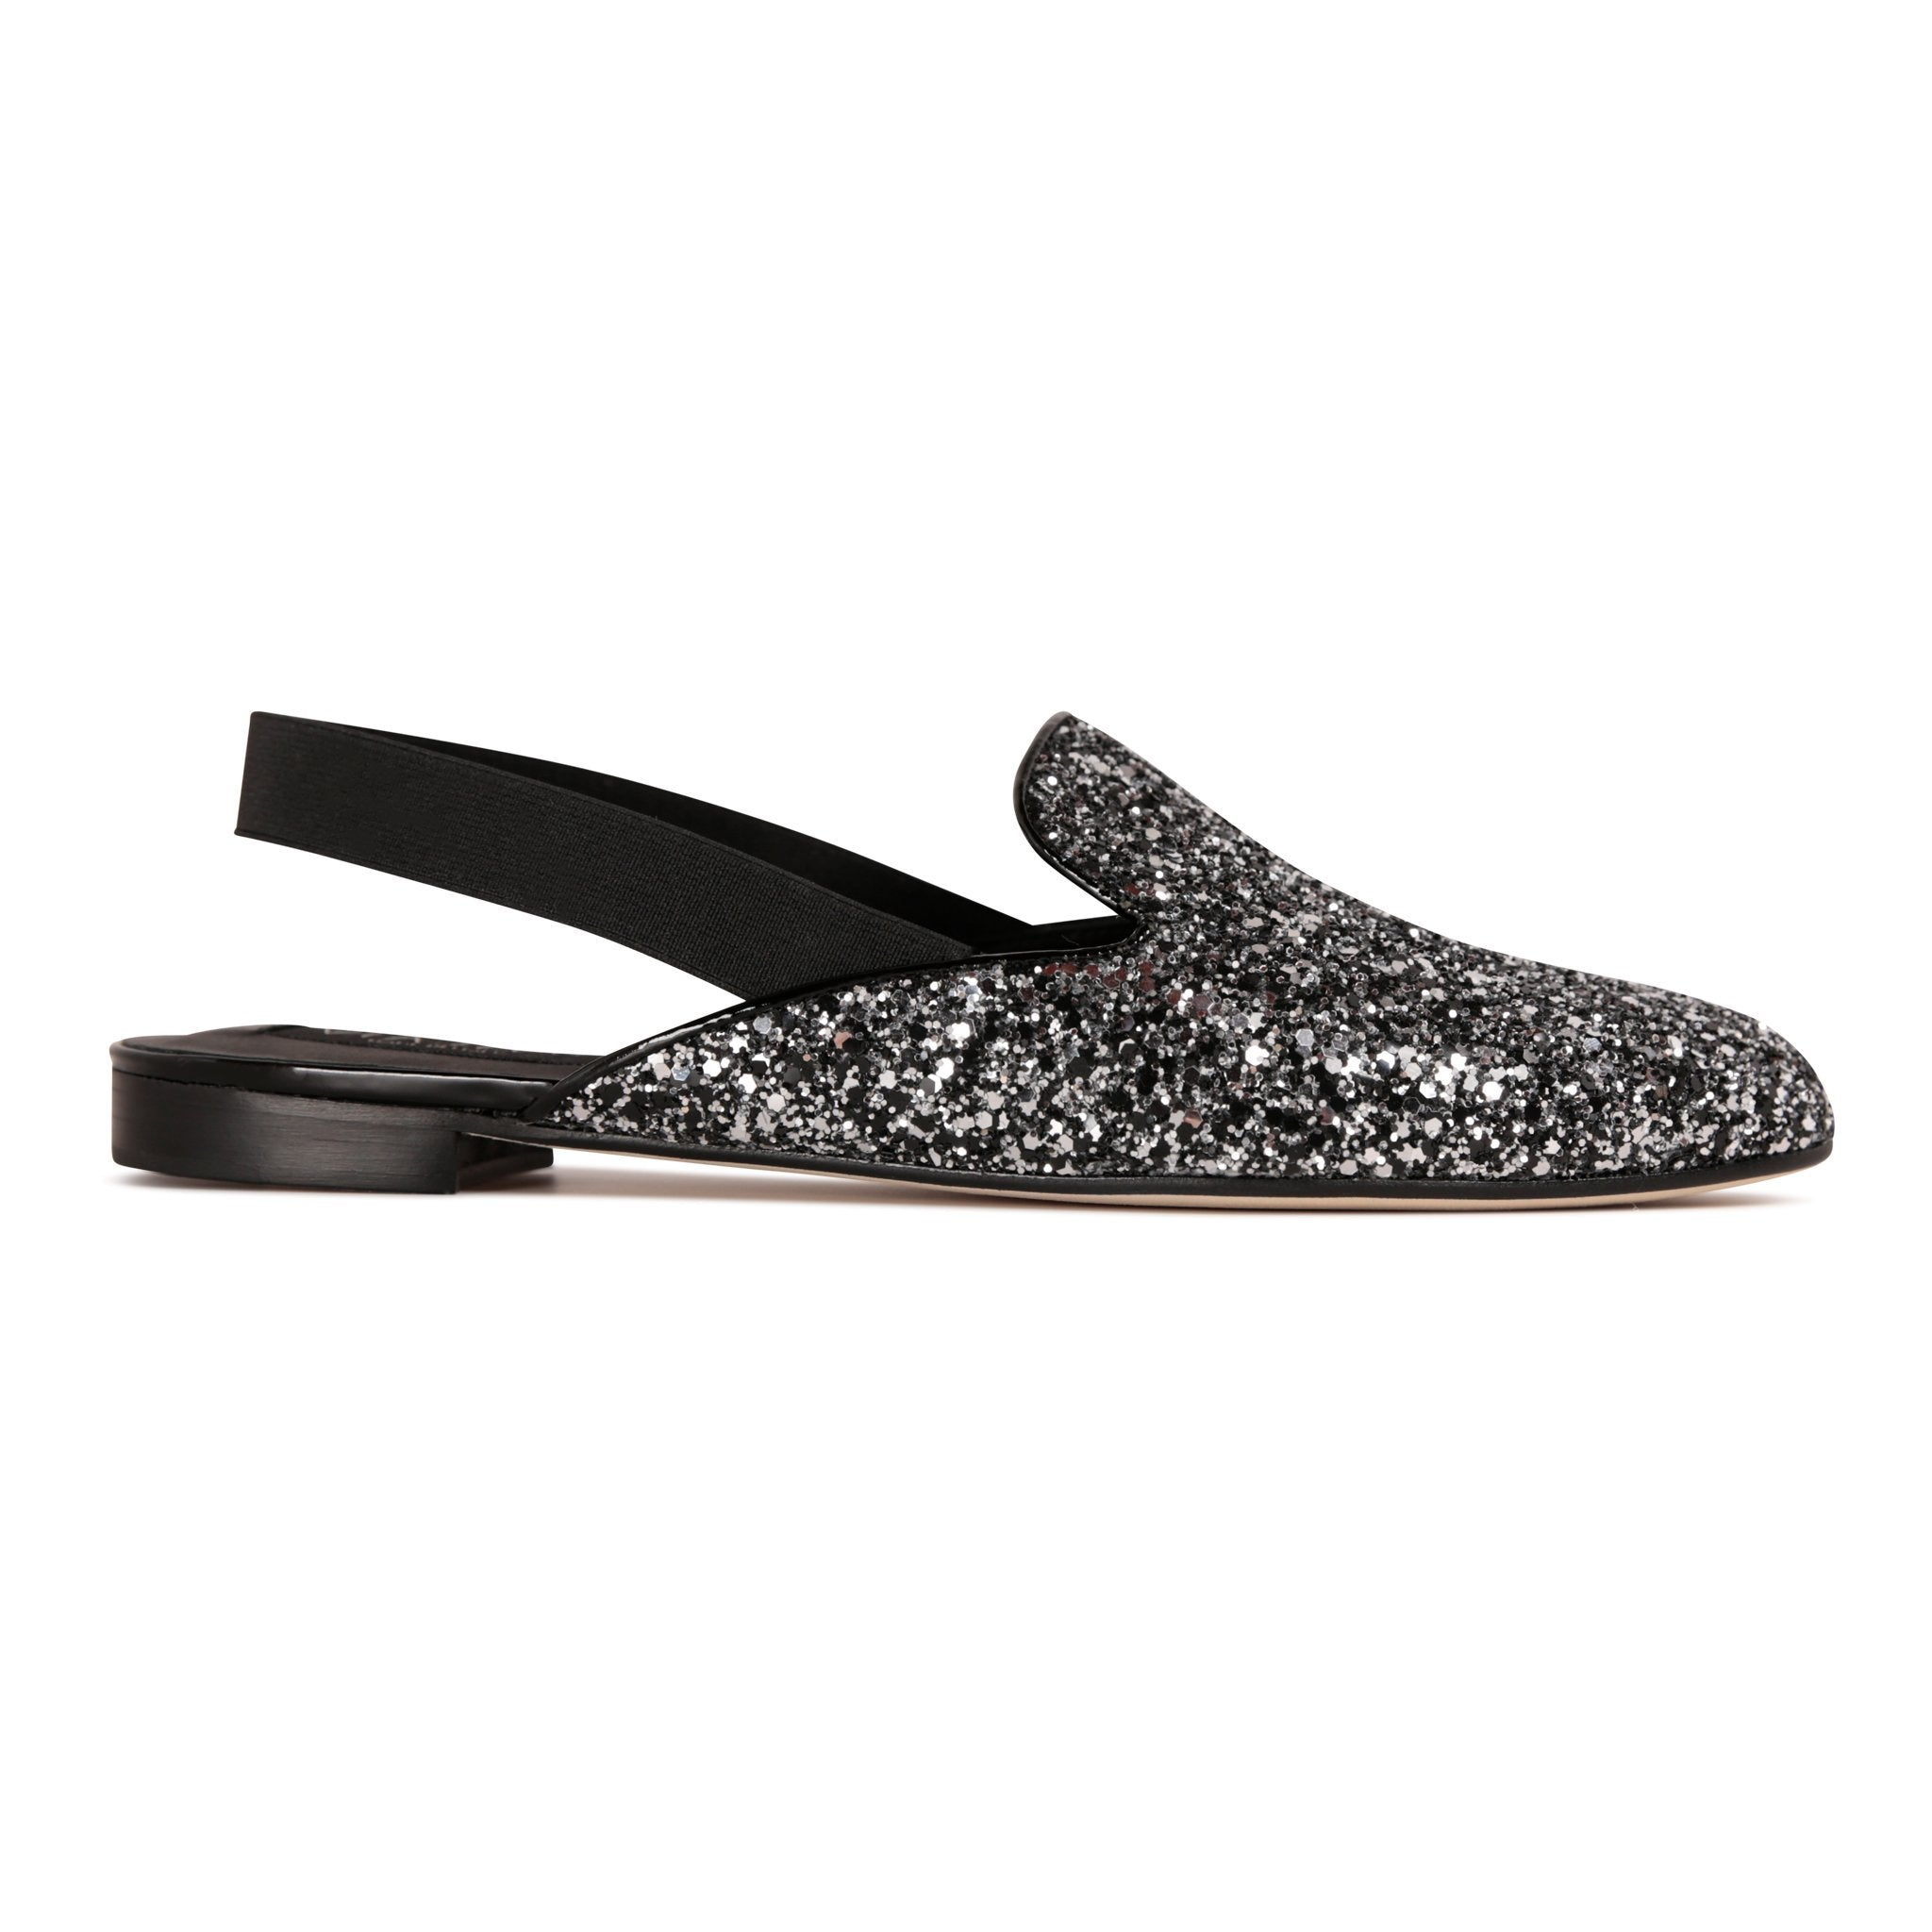 ISEO - Glitter Notte + Elastic, VIAJIYU - Women's Hand Made Sustainable Luxury Shoes. Made in Italy. Made to Order.